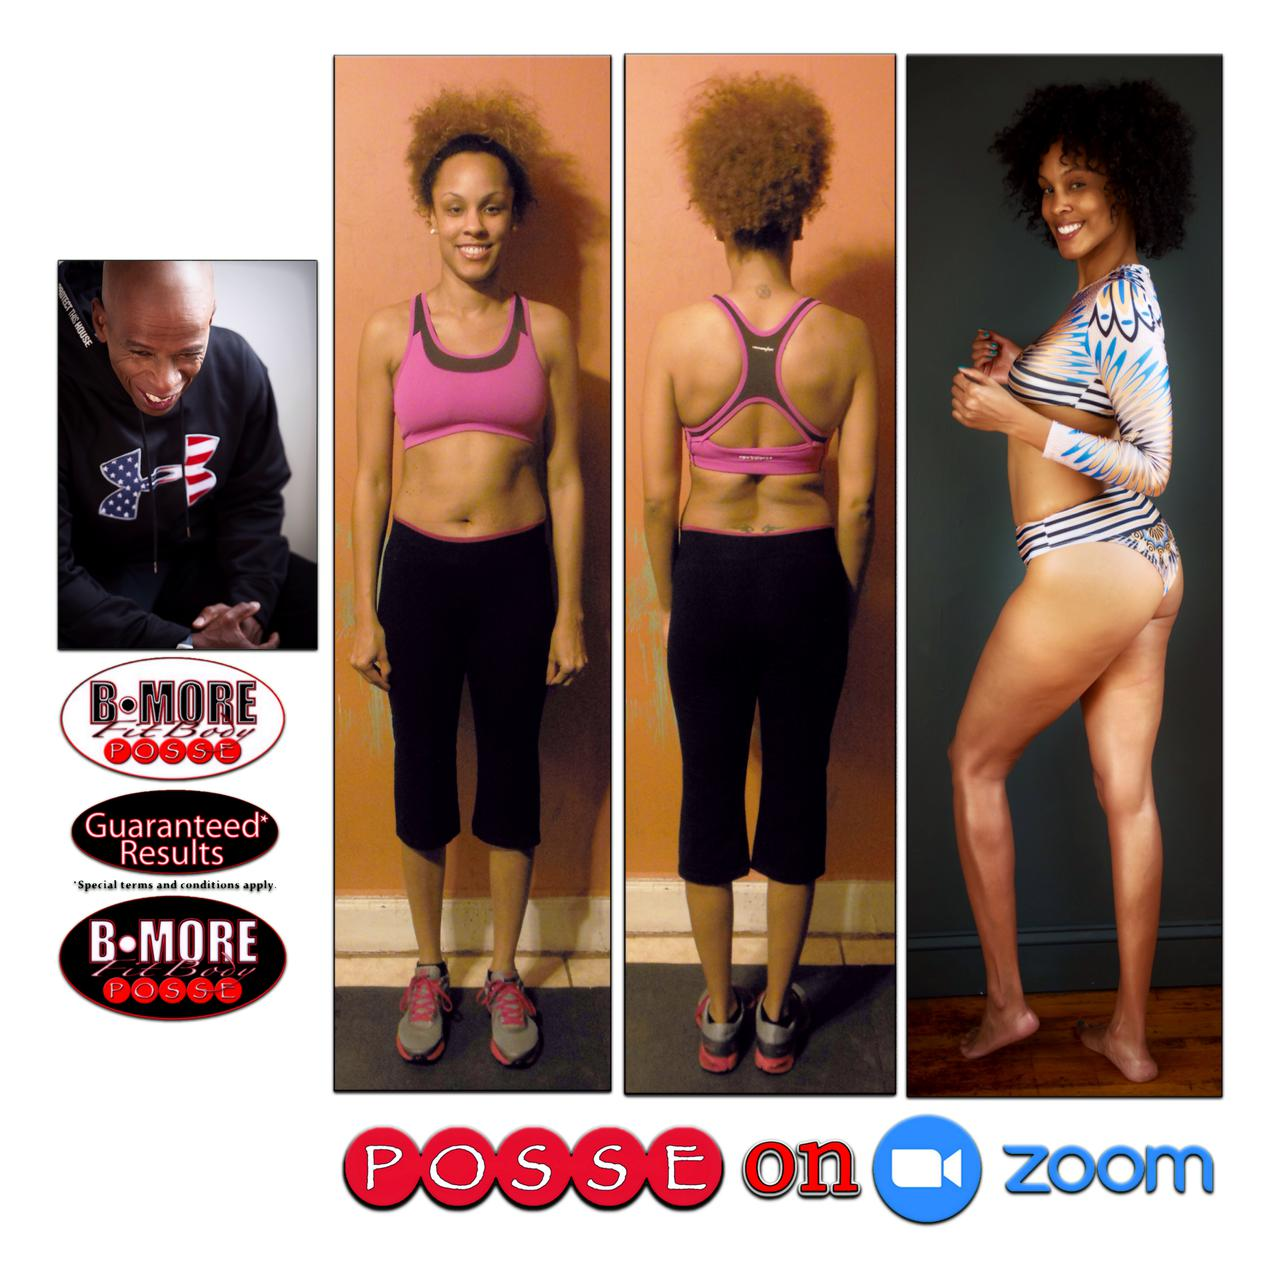 Best personal trainers in Maryland.